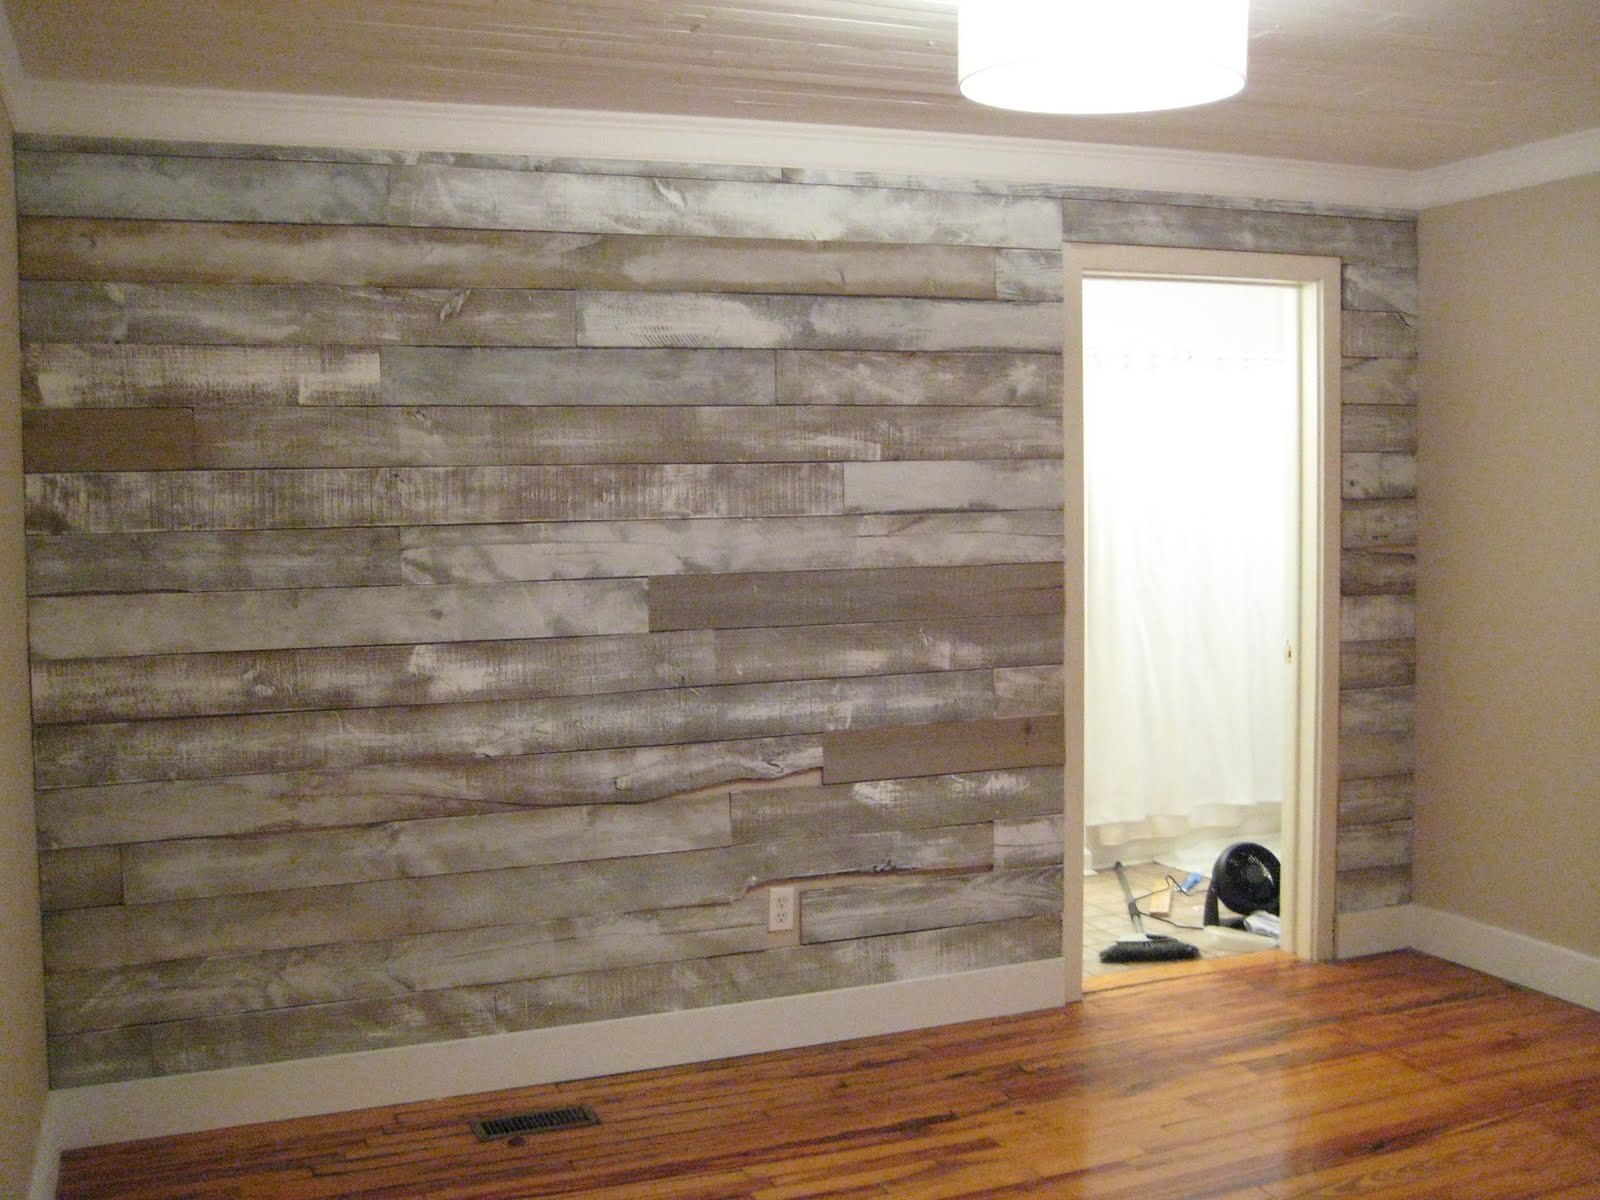 Wallpaper For Homes Wall Covering : Wood wall covering ideas homesfeed